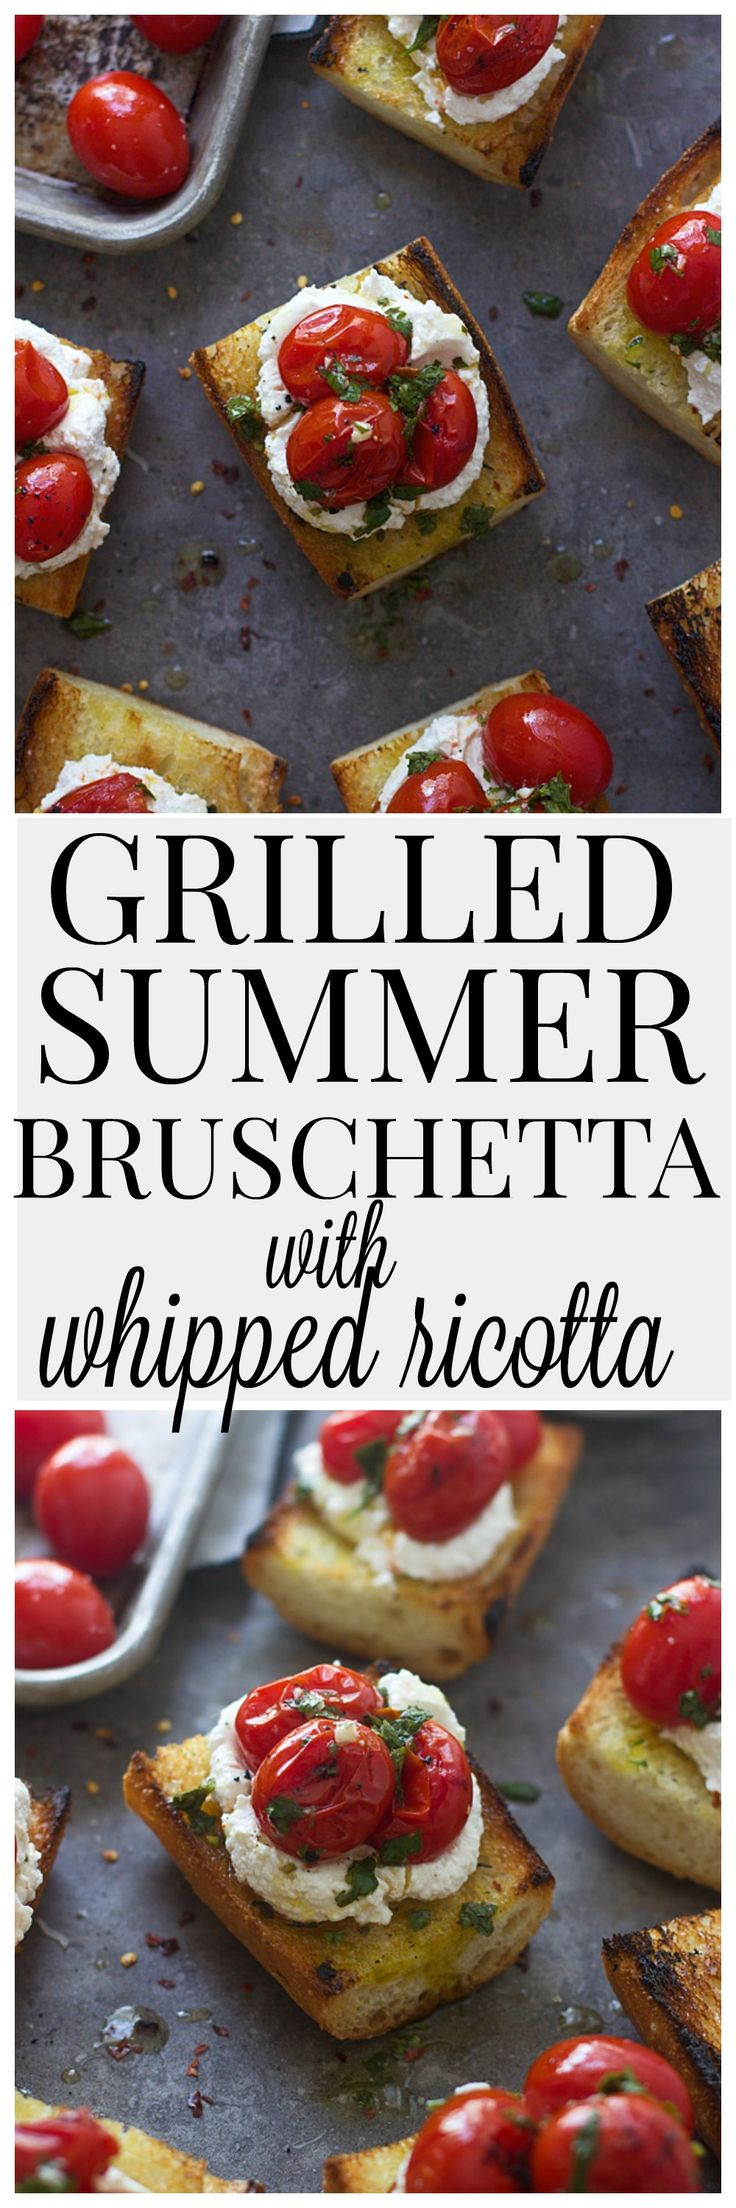 Grilled Summer Bruschetta with Whipped Ricotta and Chimichurri Sauce